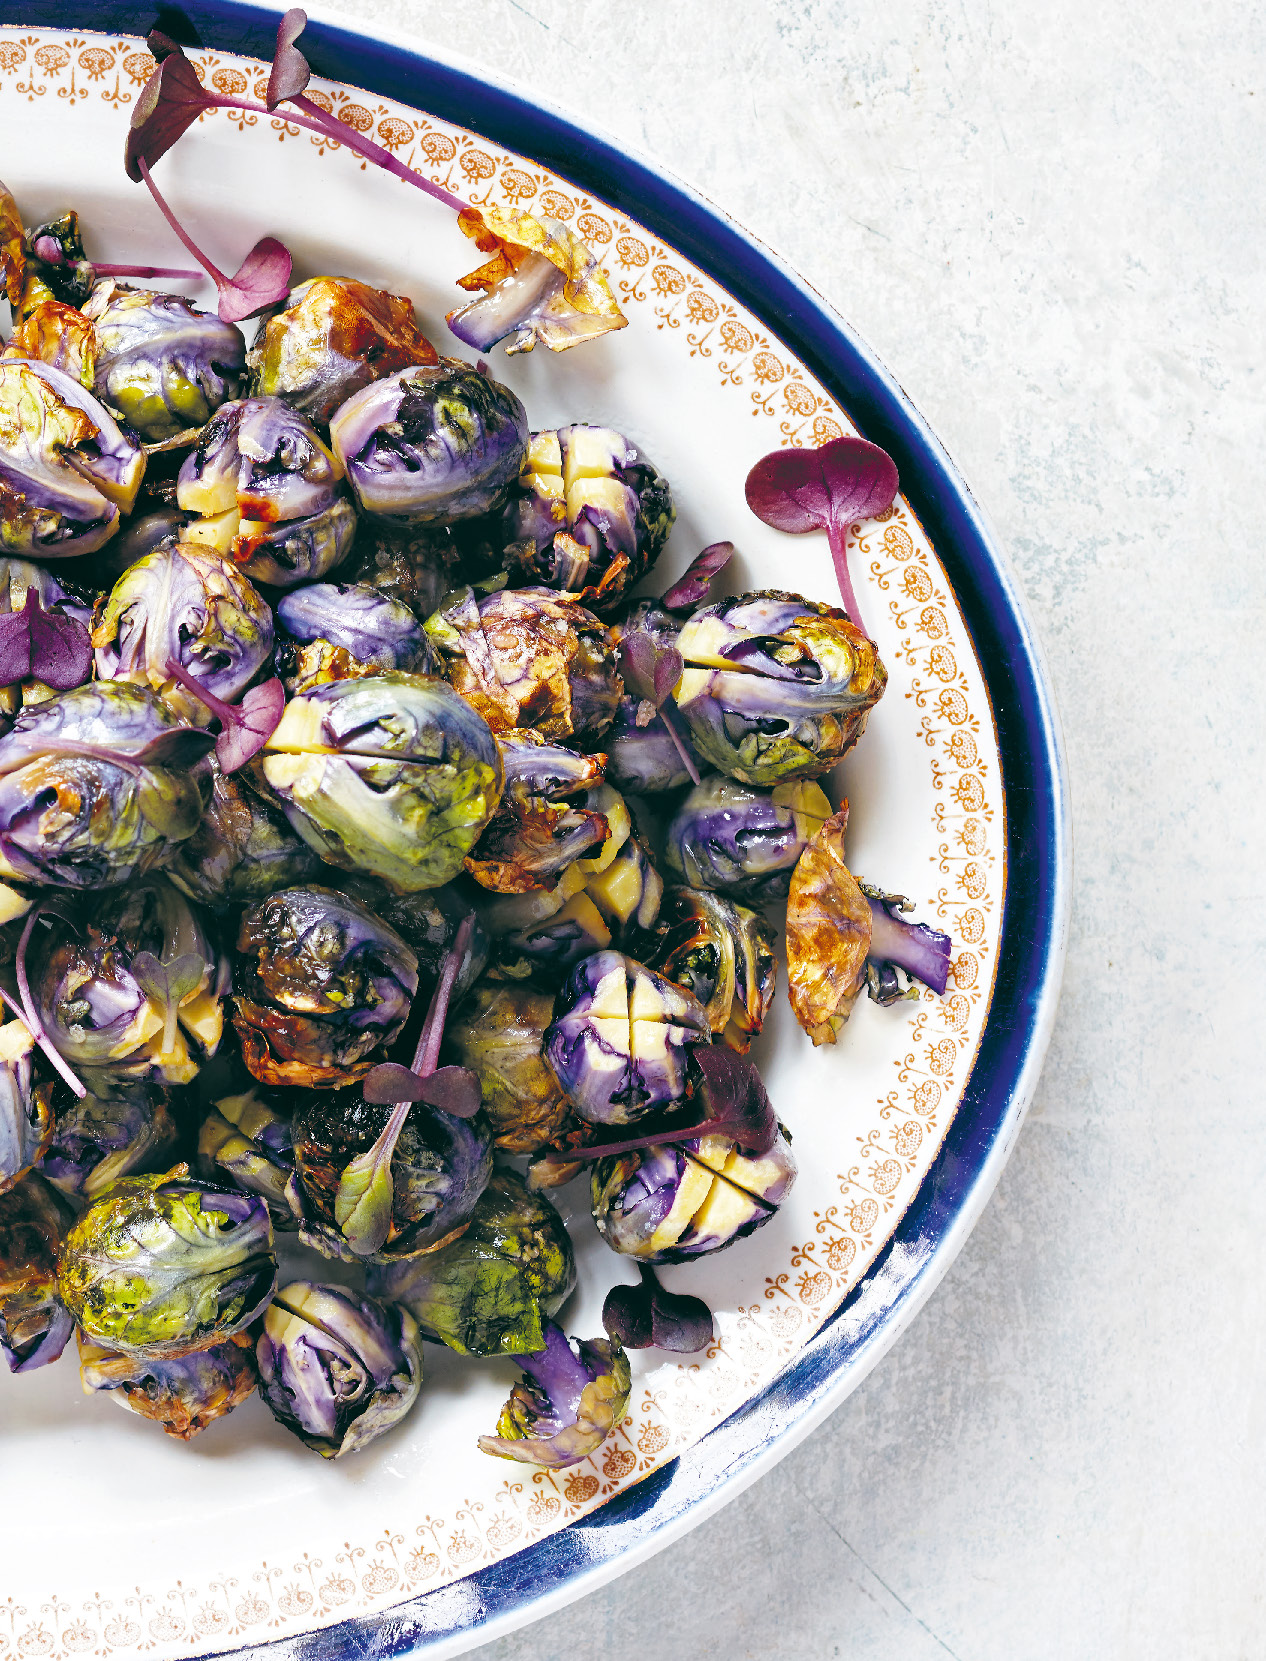 Roasted brussels sprouts with sunflower seed purée